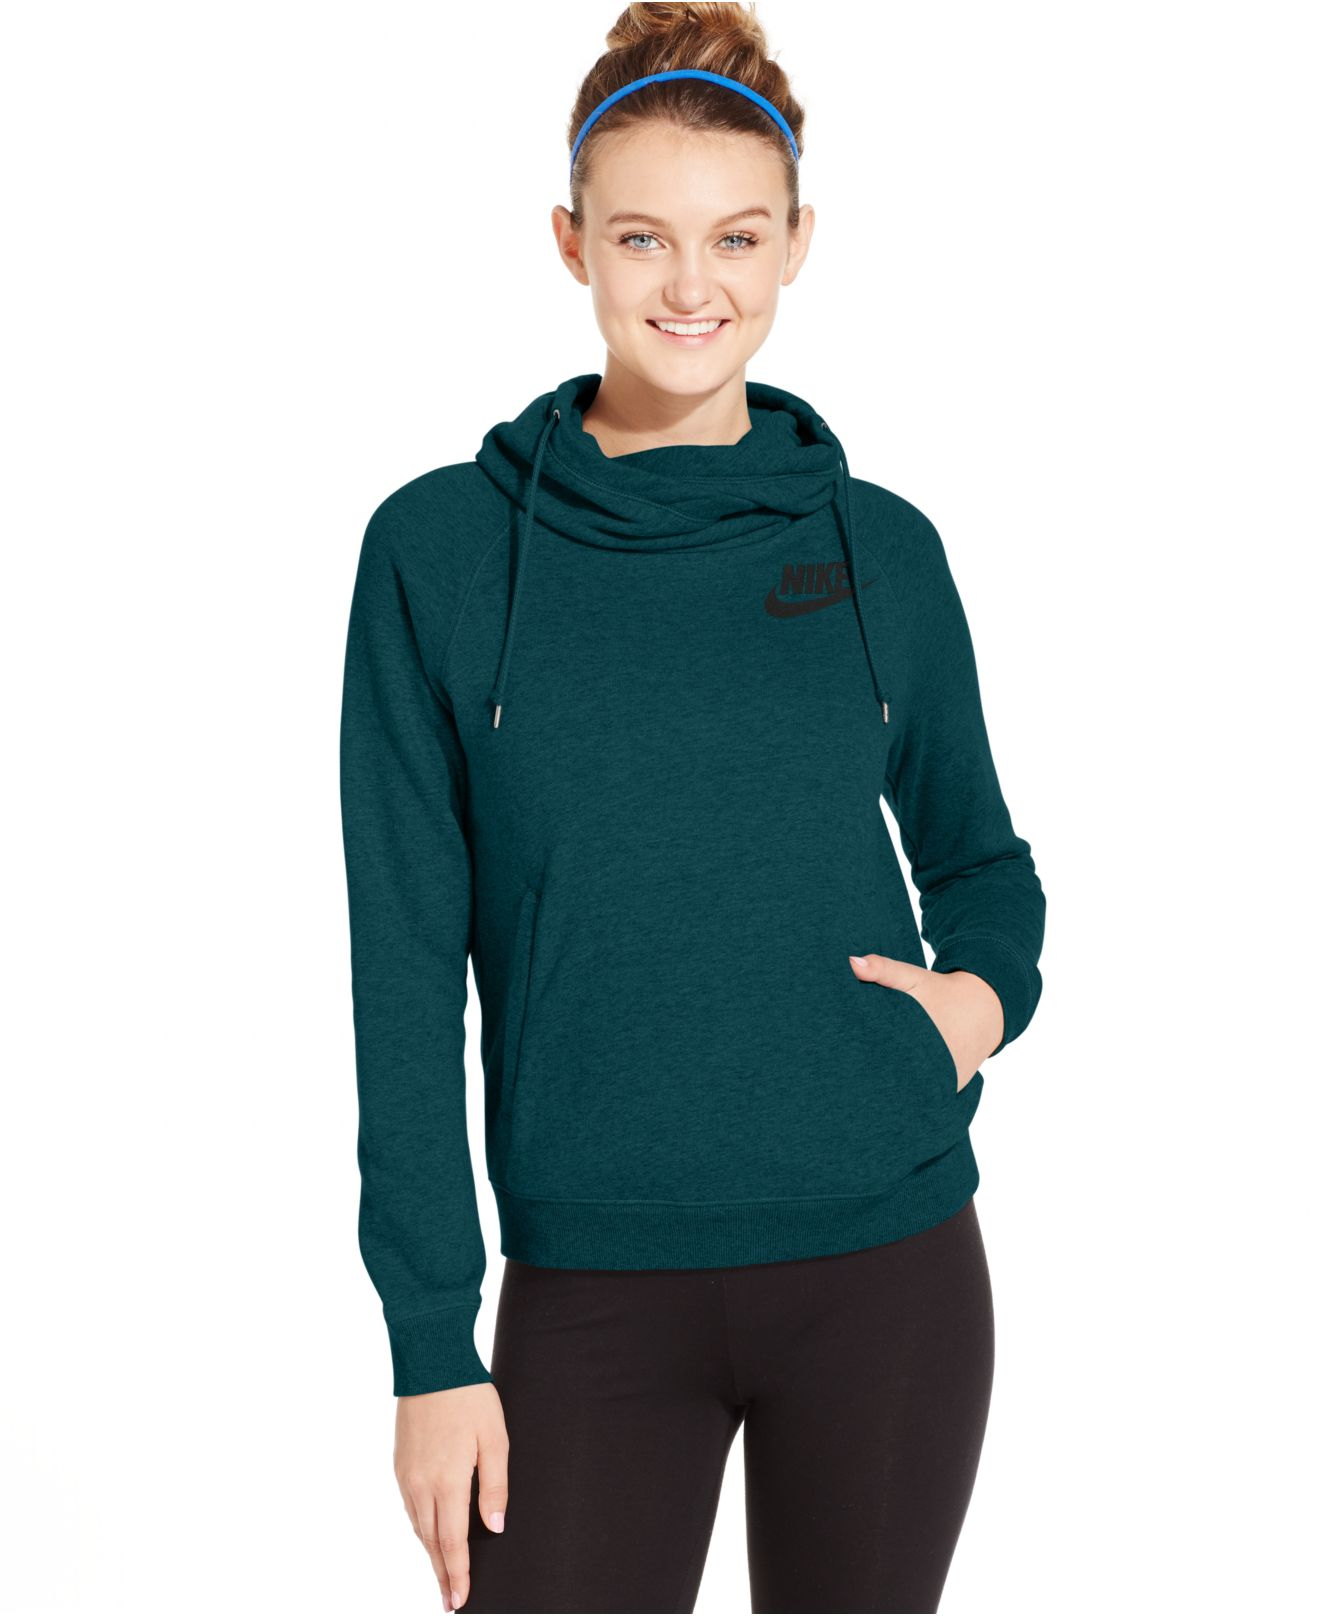 ef928b177 Nike Rally Funnel-neck Pullover Hoodie in Blue - Lyst